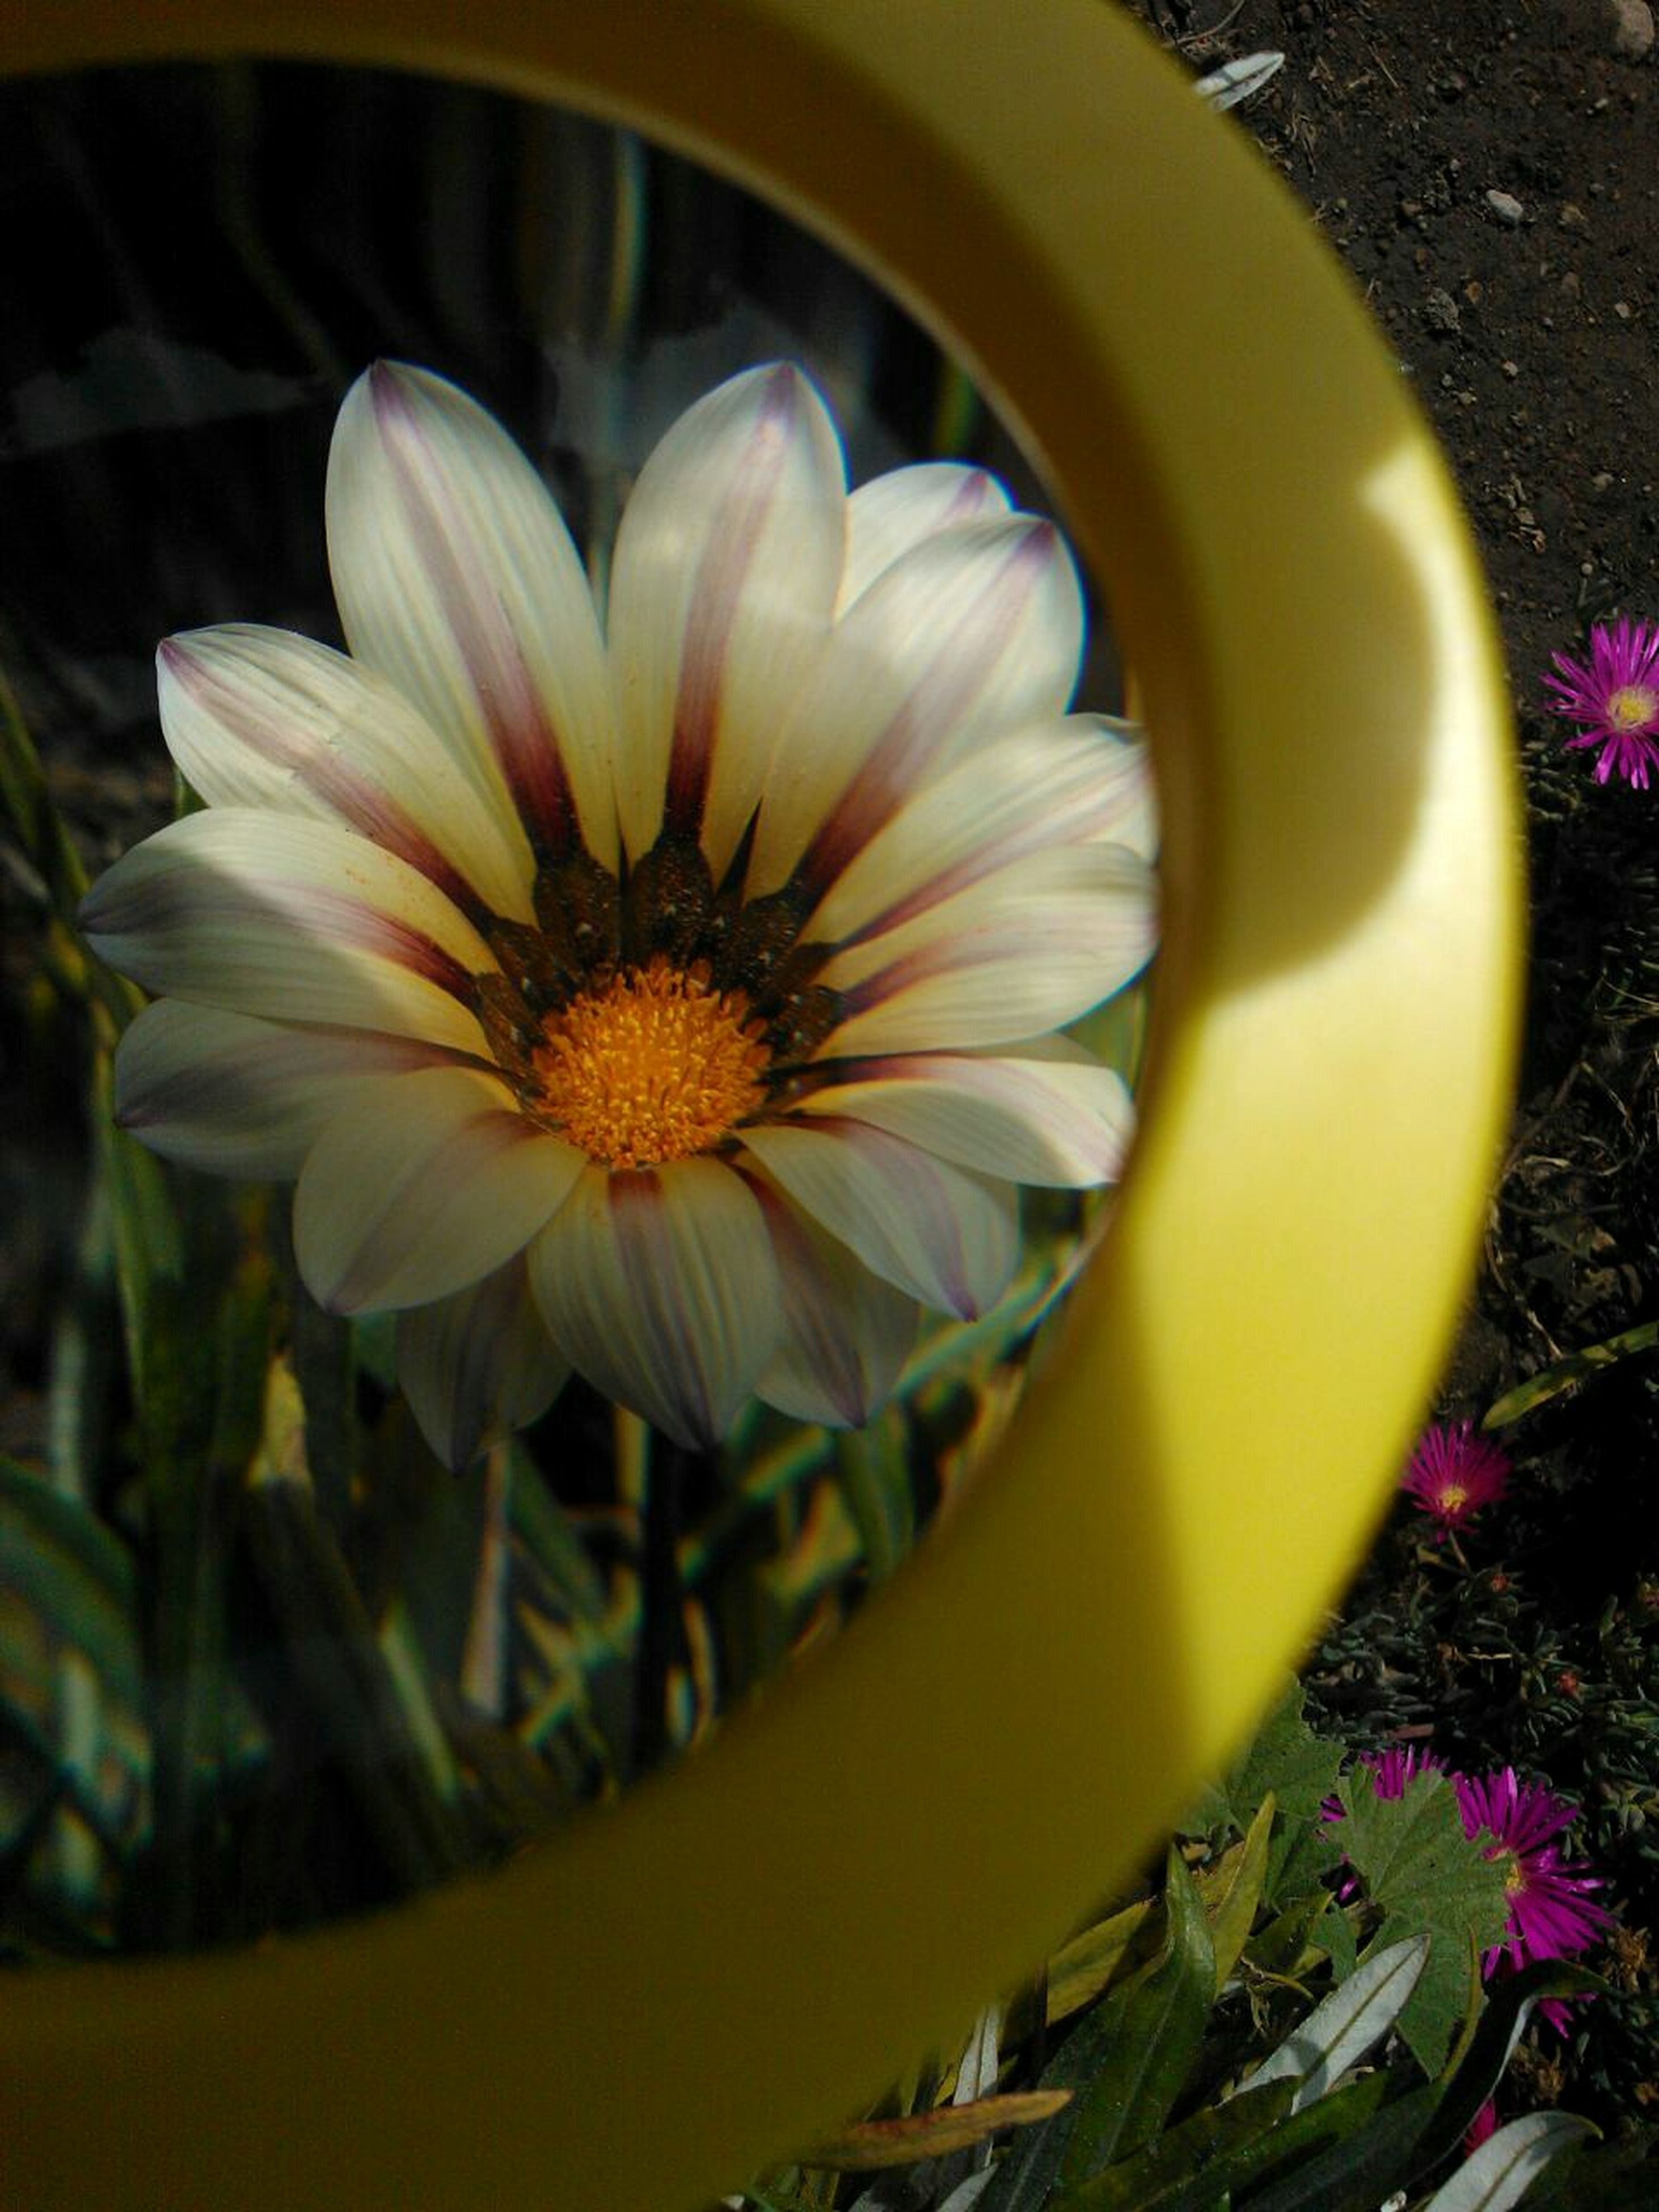 flower, petal, fragility, freshness, flower head, growth, nature, beauty in nature, yellow, blooming, day, plant, outdoors, no people, close-up, stamen, gazania, crocus